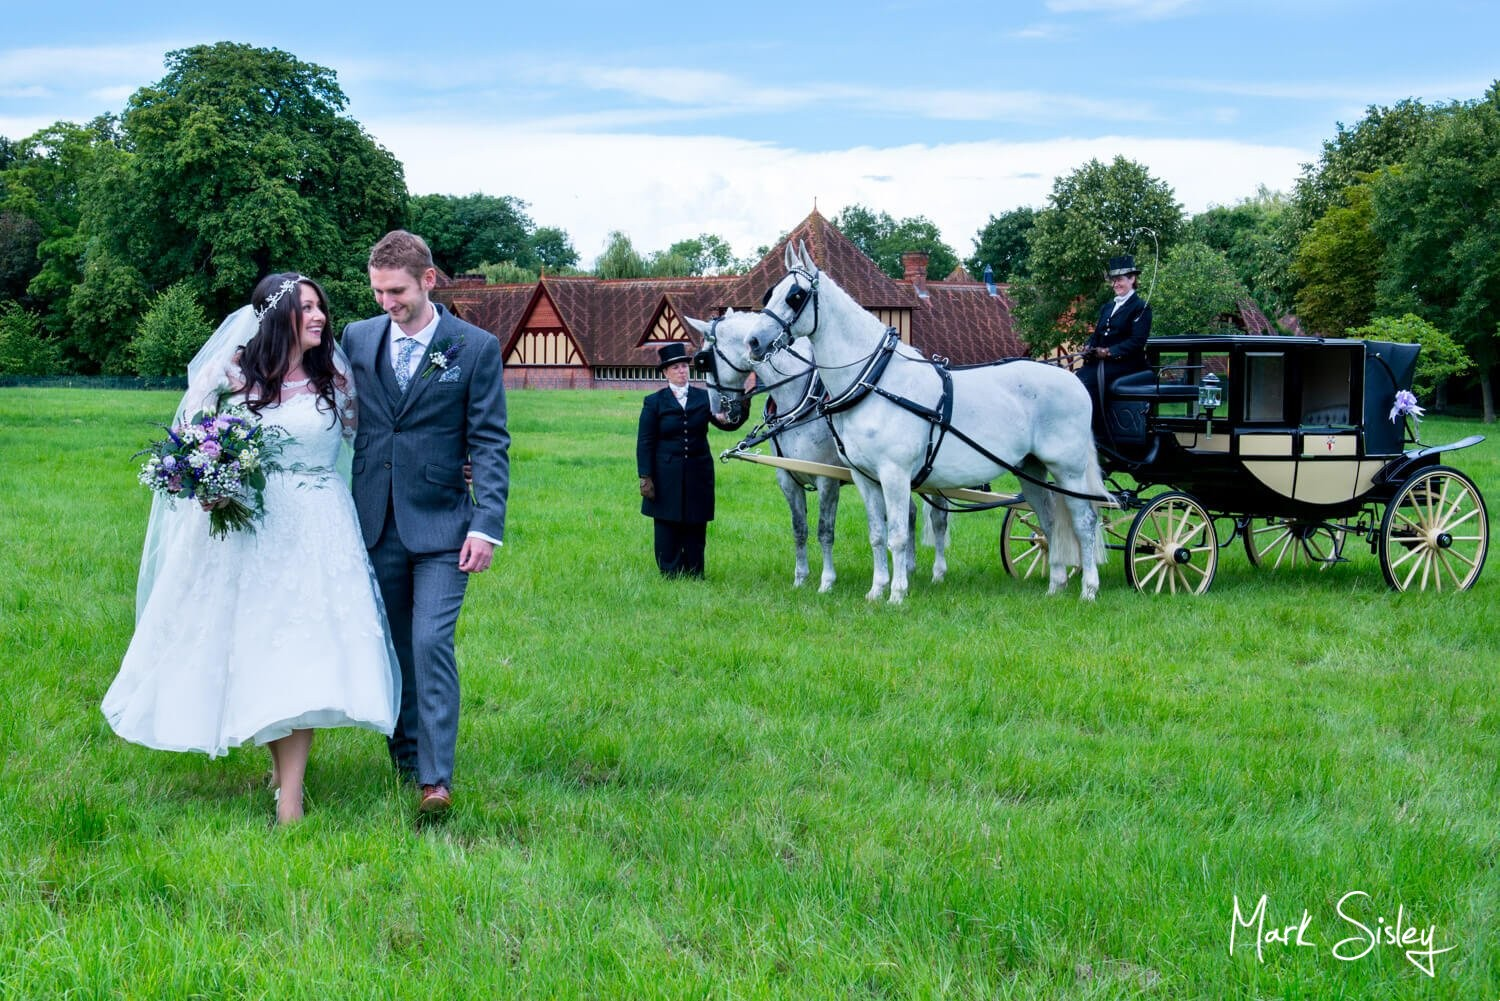 Dairy Waddesdon wedding photos of the newlyweds with their horses and carriage